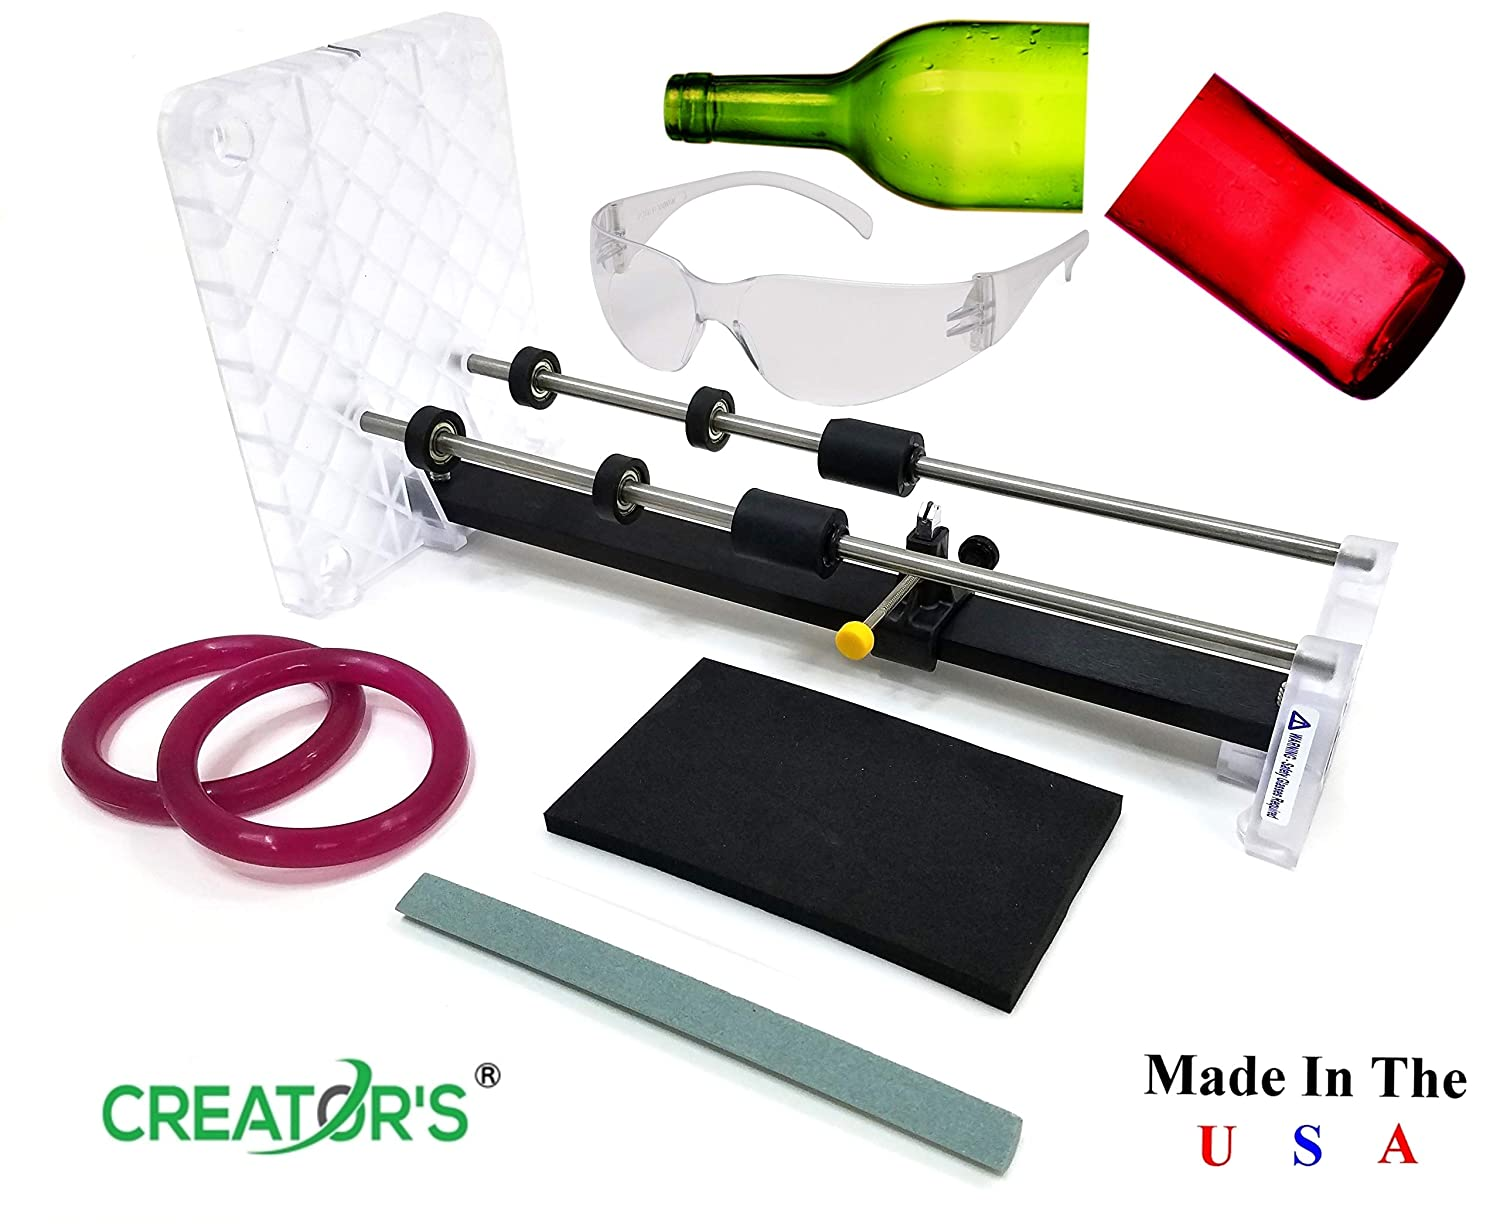 Creator's Bottle Cutter